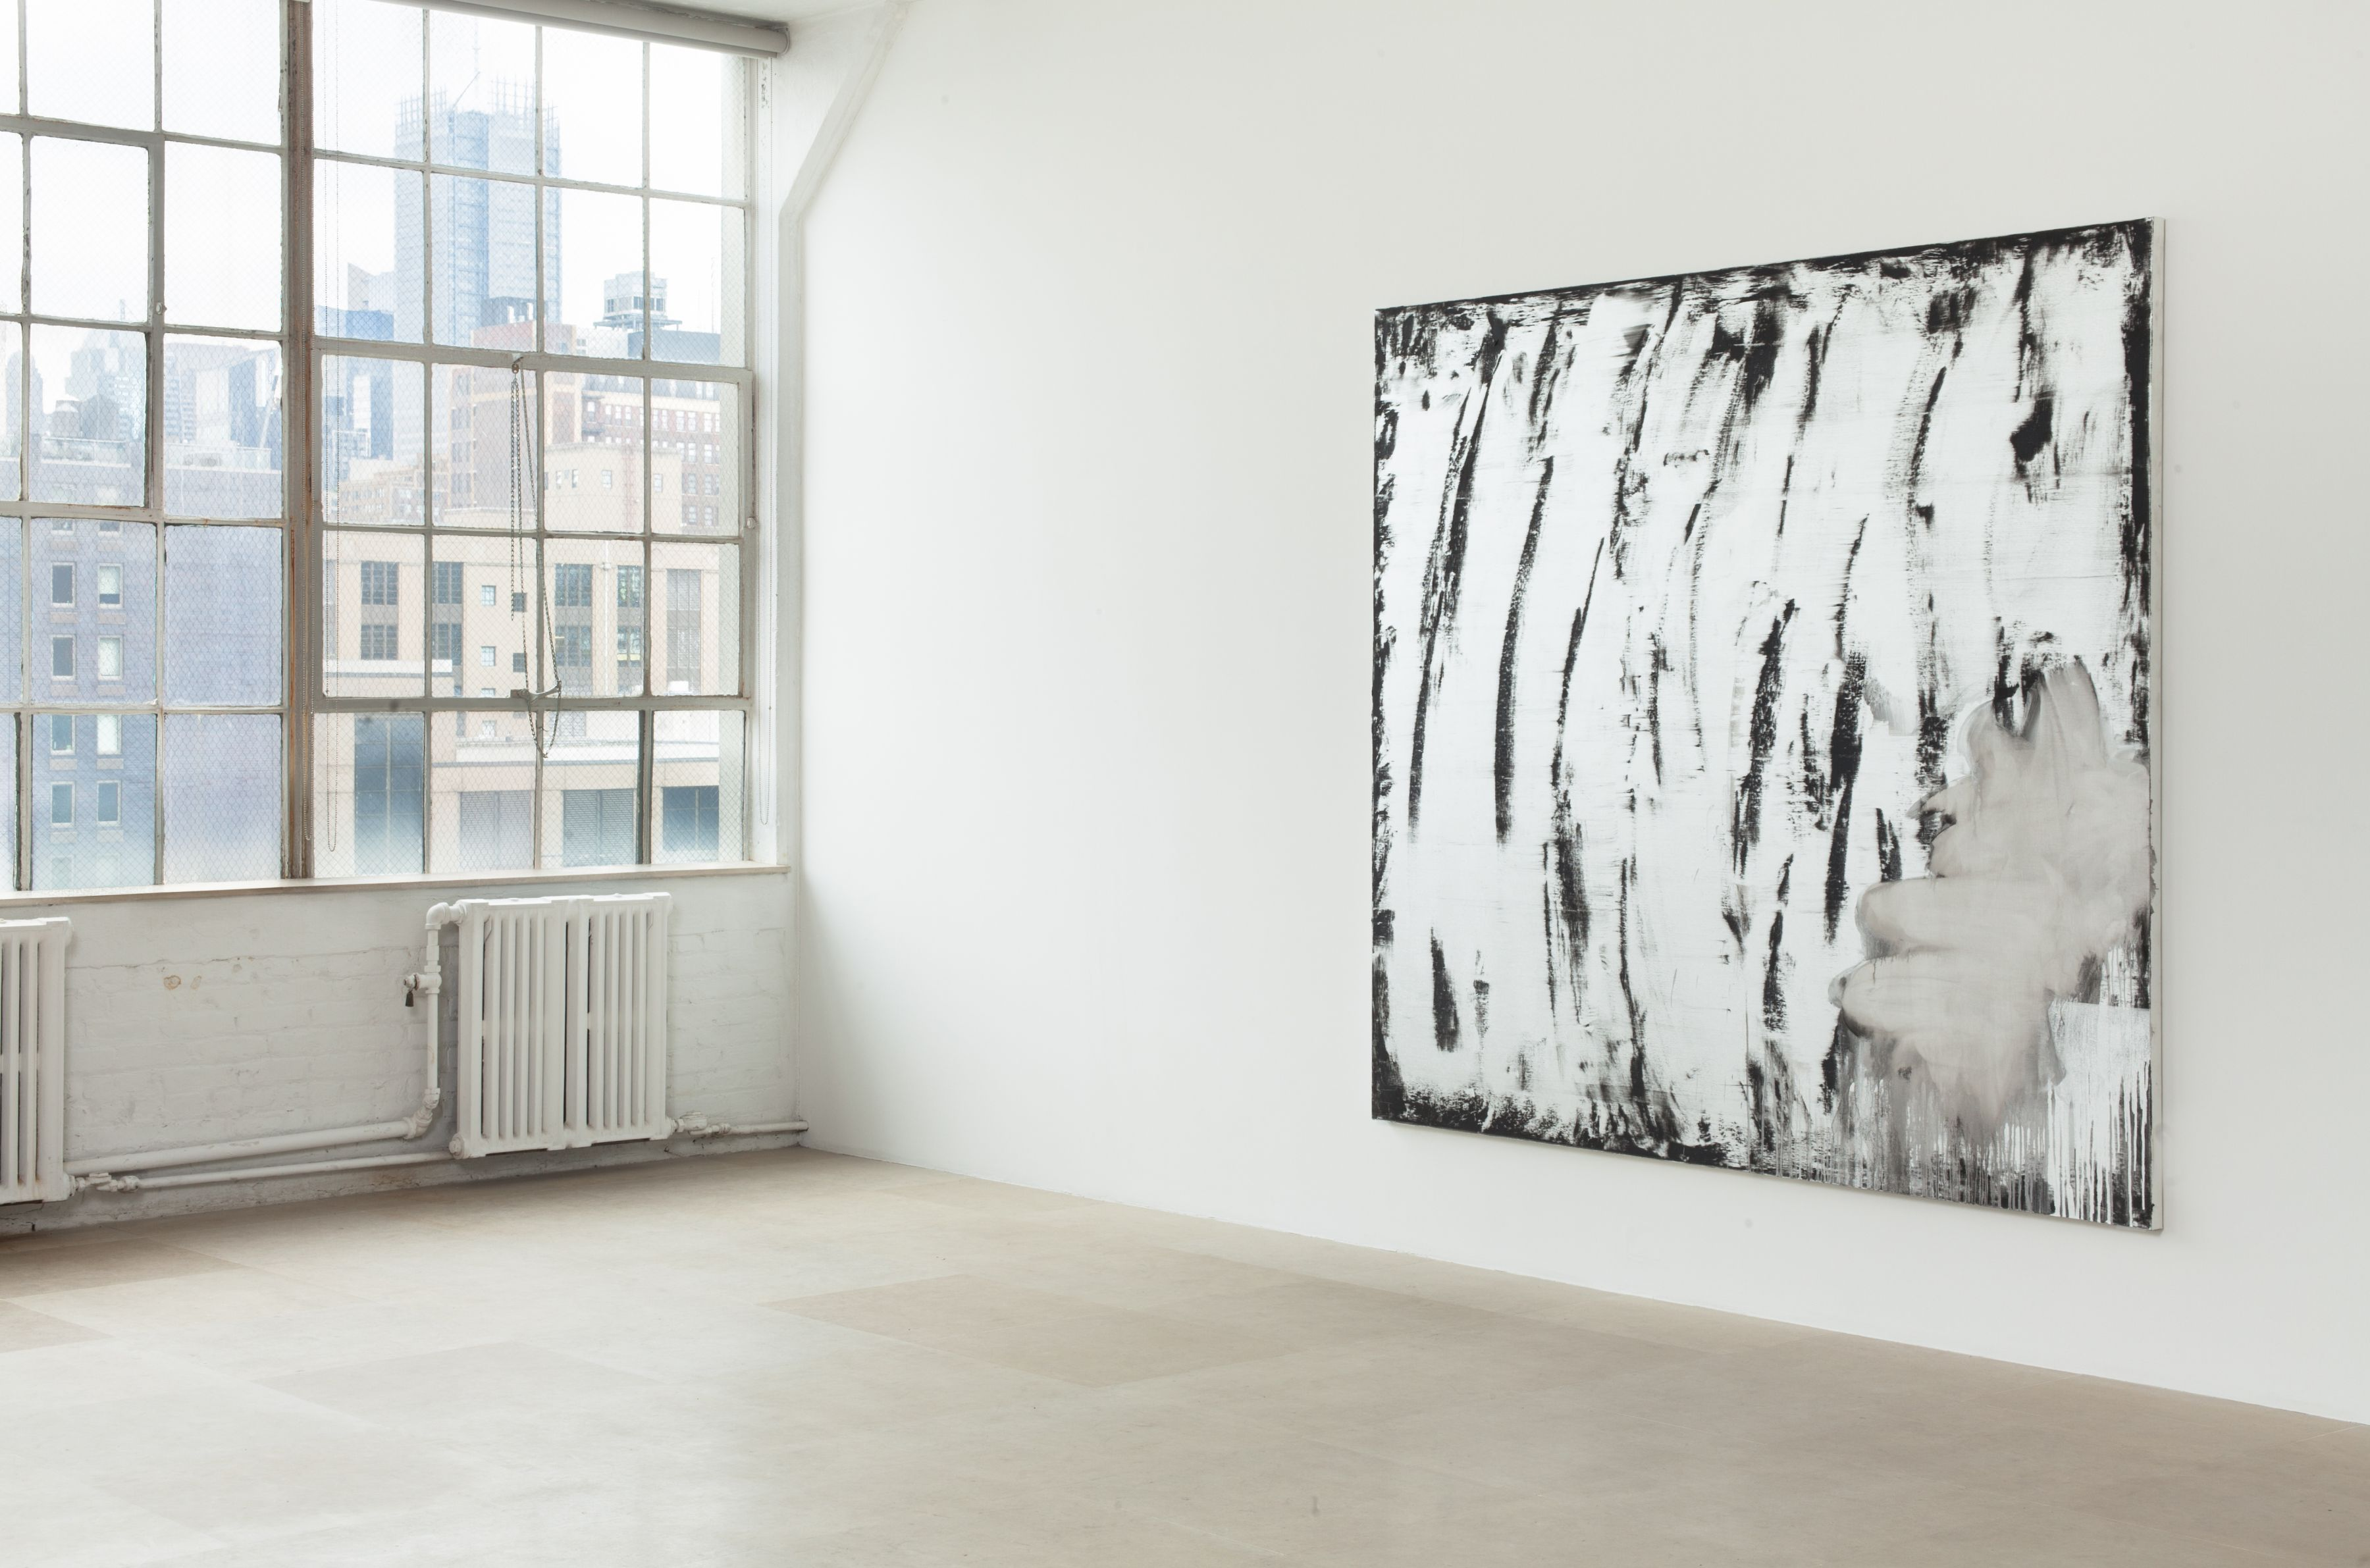 Jacqueline Humphries, Untitled, 2011, oil on canvas, 80 x 87 inches, Installation view, Greene Naftali, New York, 2012